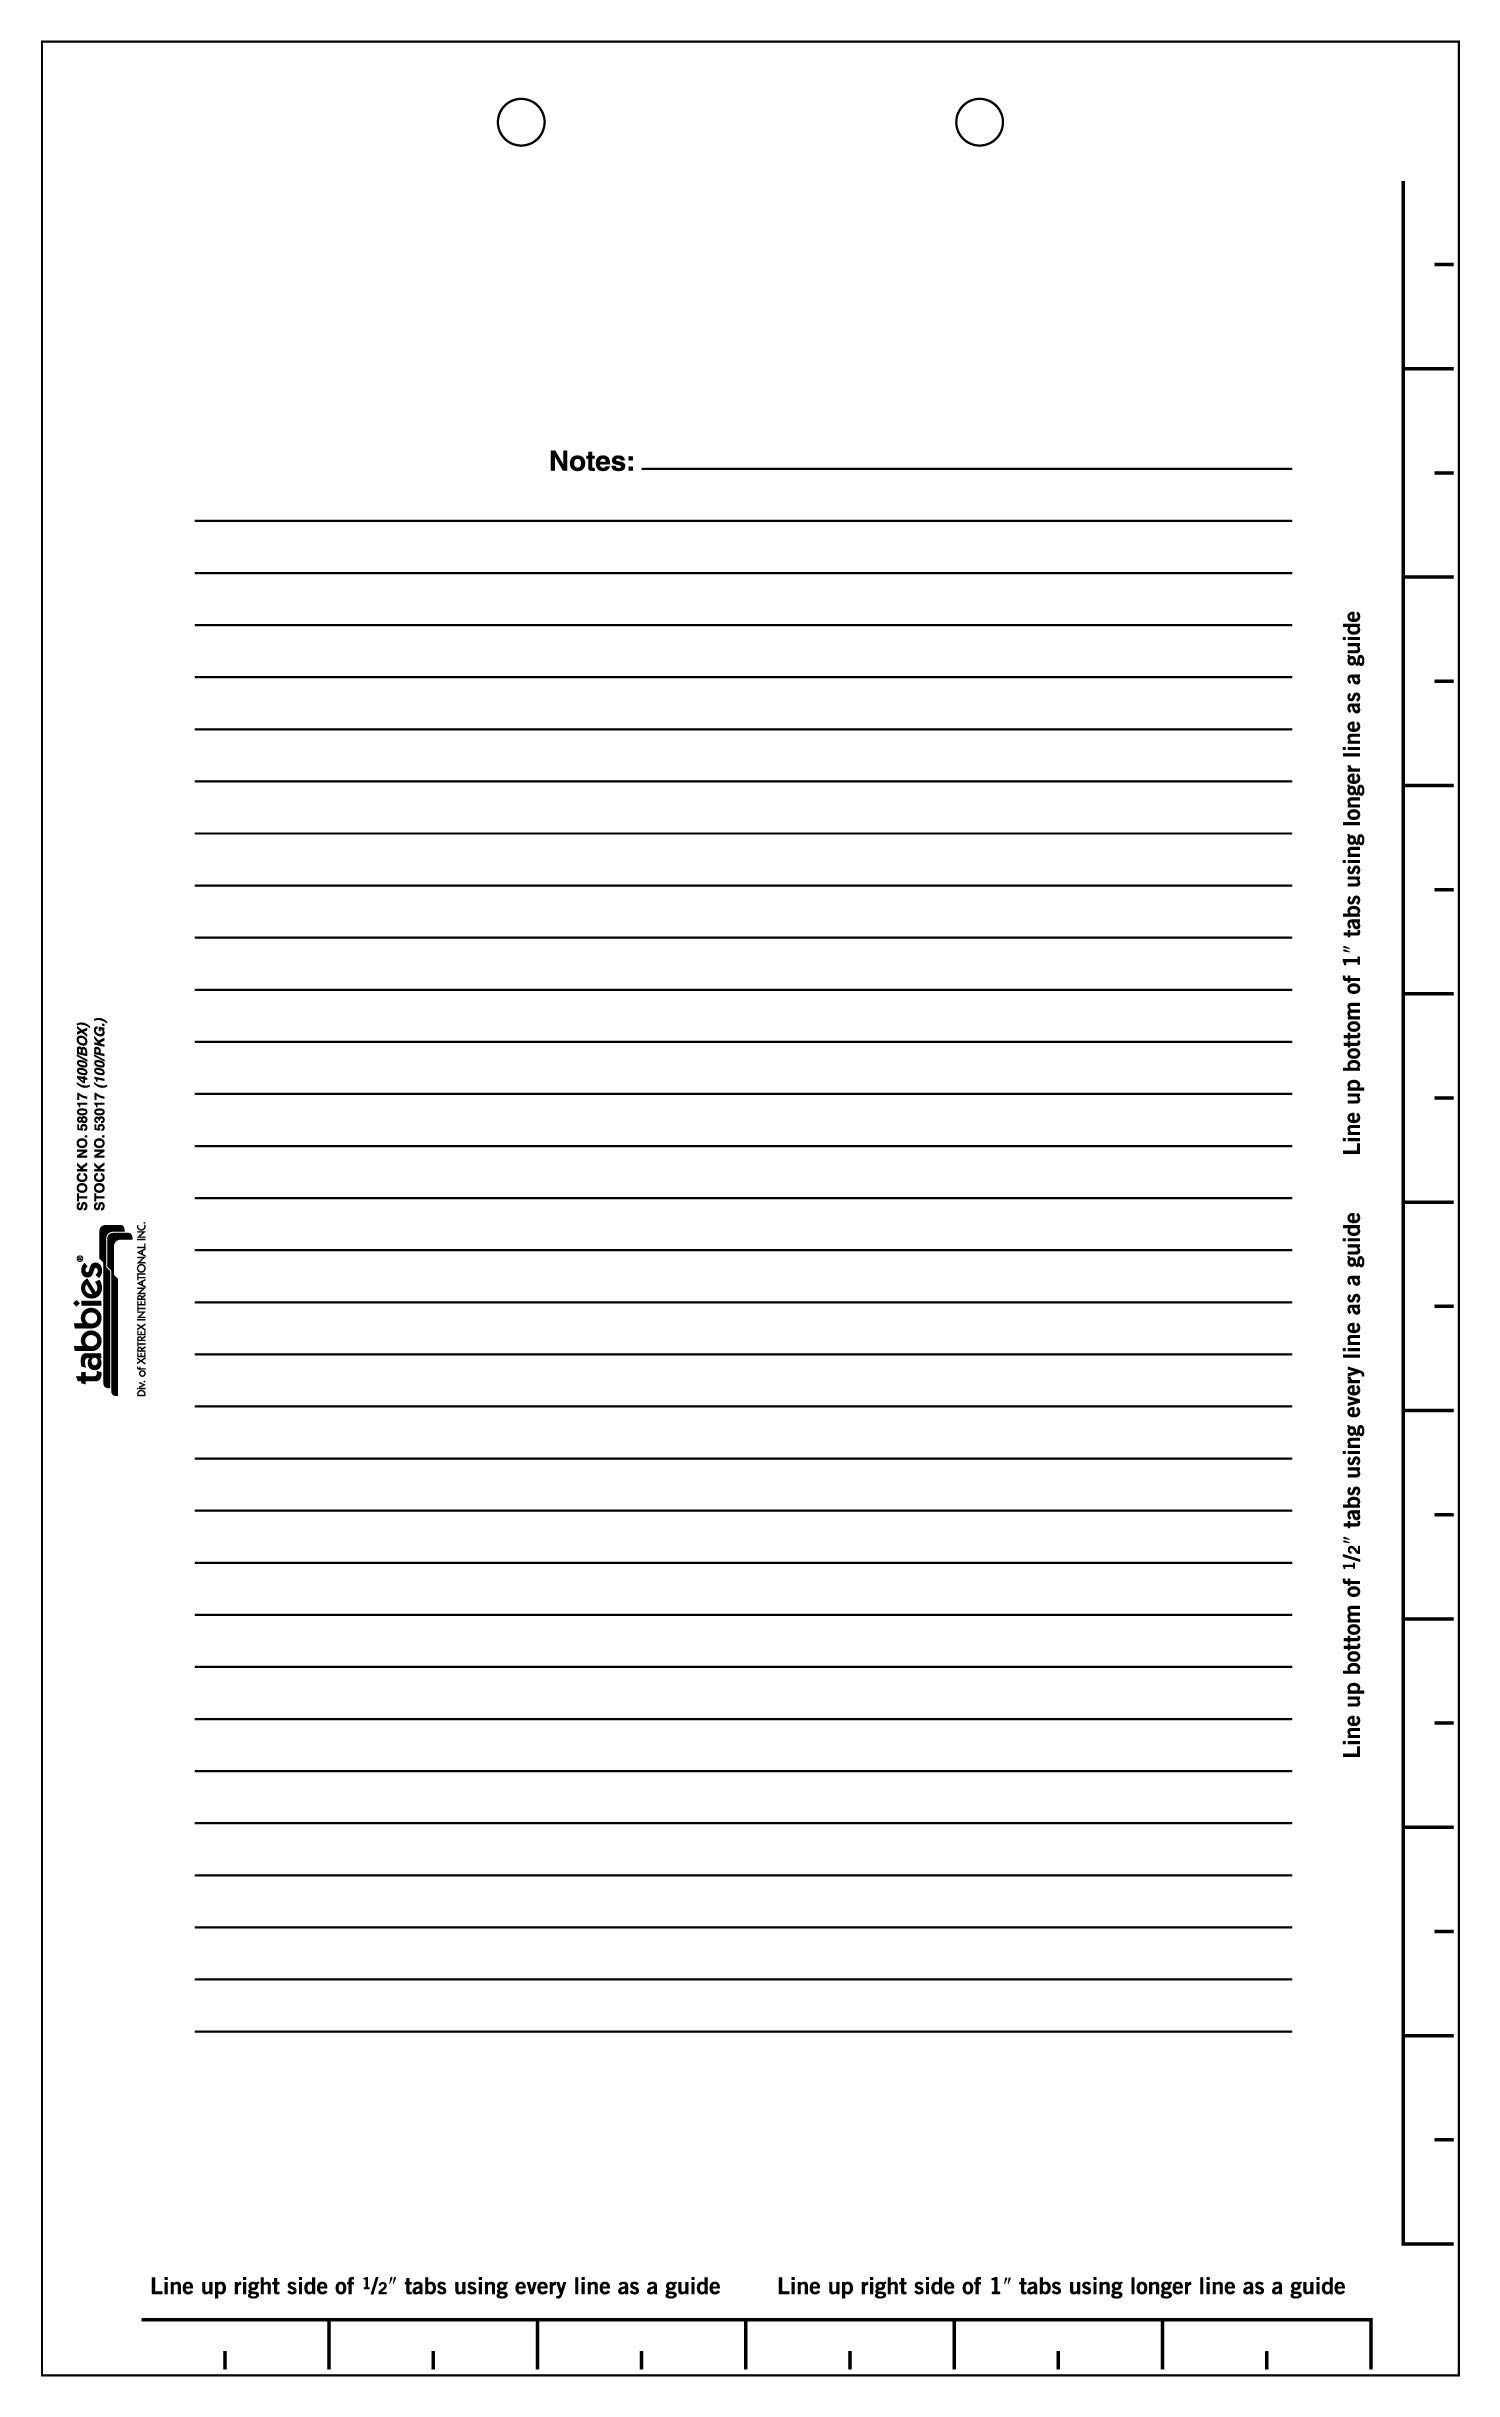 Tabbies Legal Index Divider Sheets, White, 8-1/2''W x 14''H, 2-Hole Punched, 400 Dividers/Box (58017) by tabbies